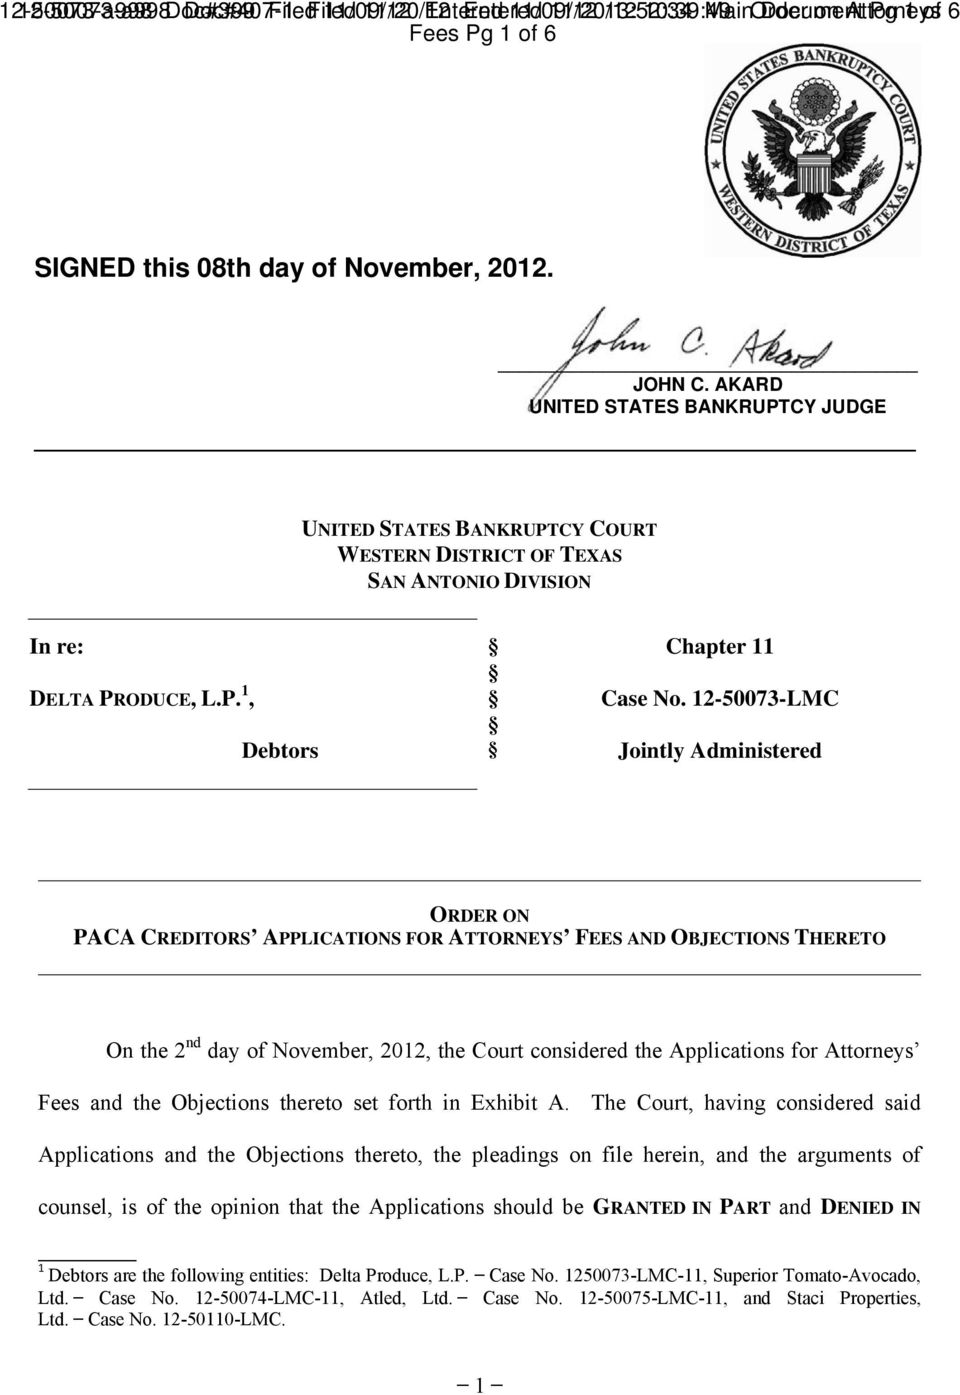 12-50073-LMC Debtors Jointly Administered ORDER ON PACA CREDITORS APPLICATIONS FOR ATTORNEYS FEES AND OBJECTIONS THERETO On the 2 nd day of November, 2012, the Court considered the Applications for